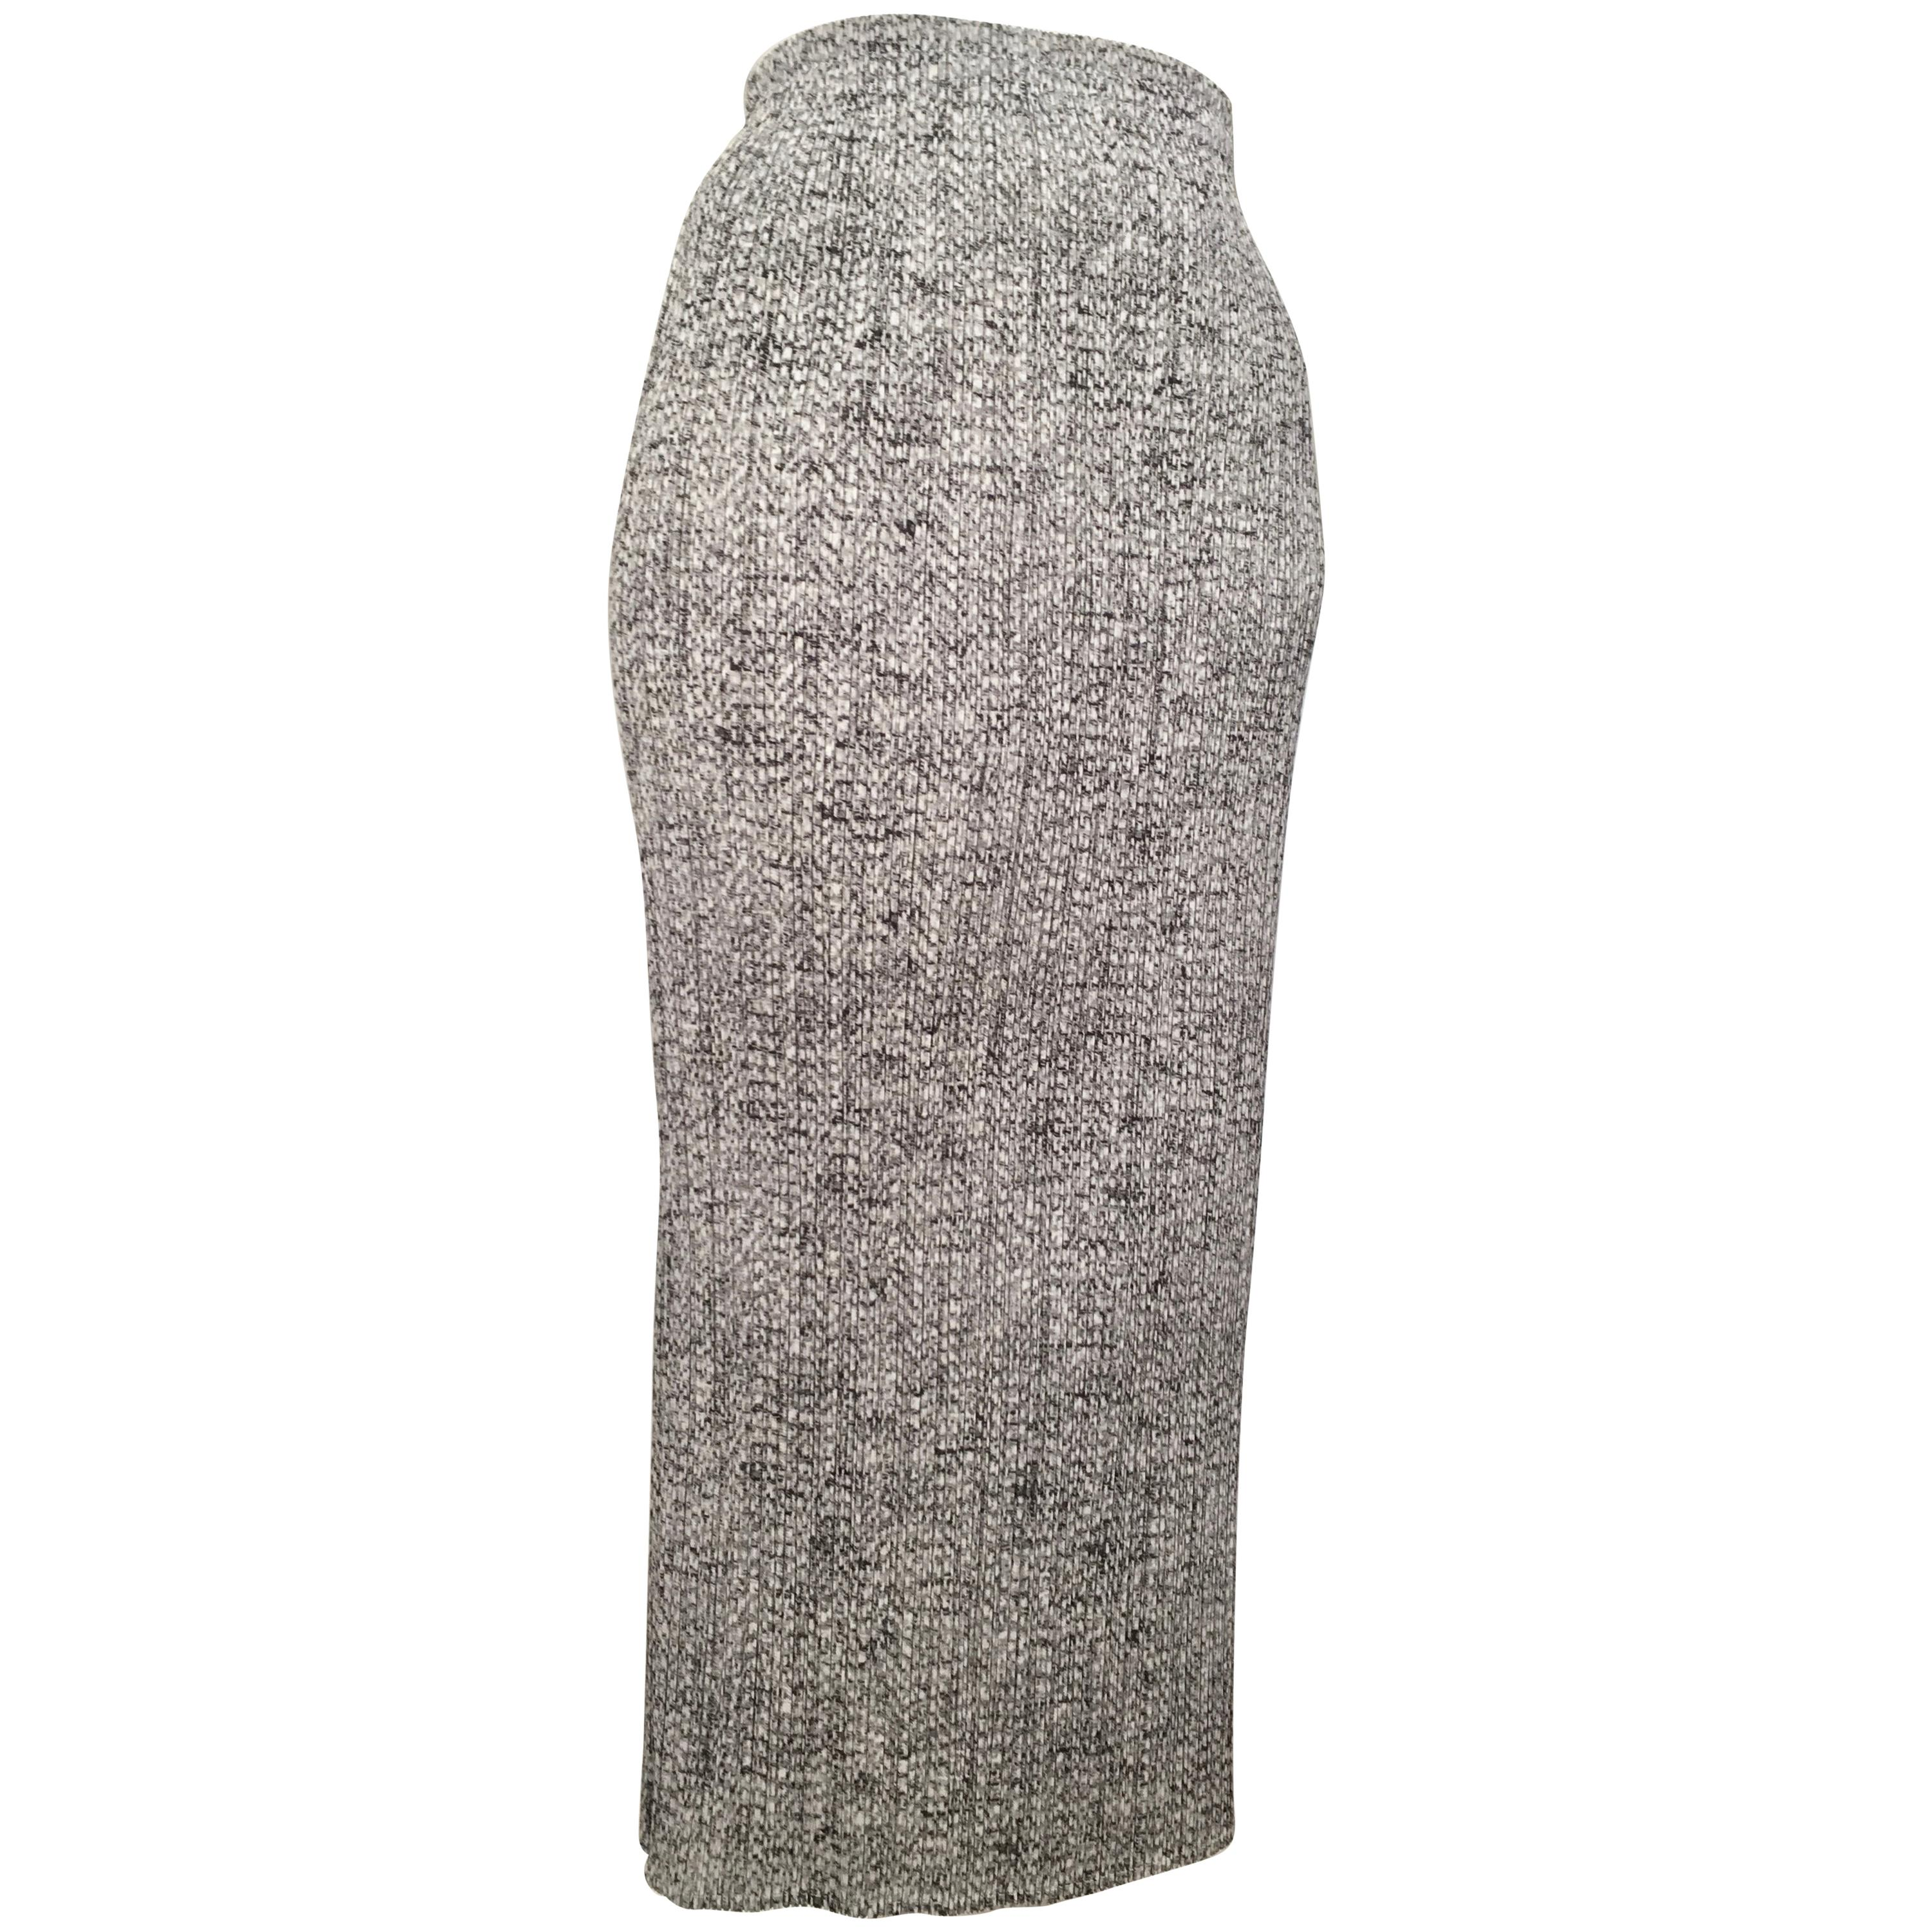 a994f47463 Issey Miyake Pleats Please 1990s Black and White Long Skirt Size Small. at  1stdibs